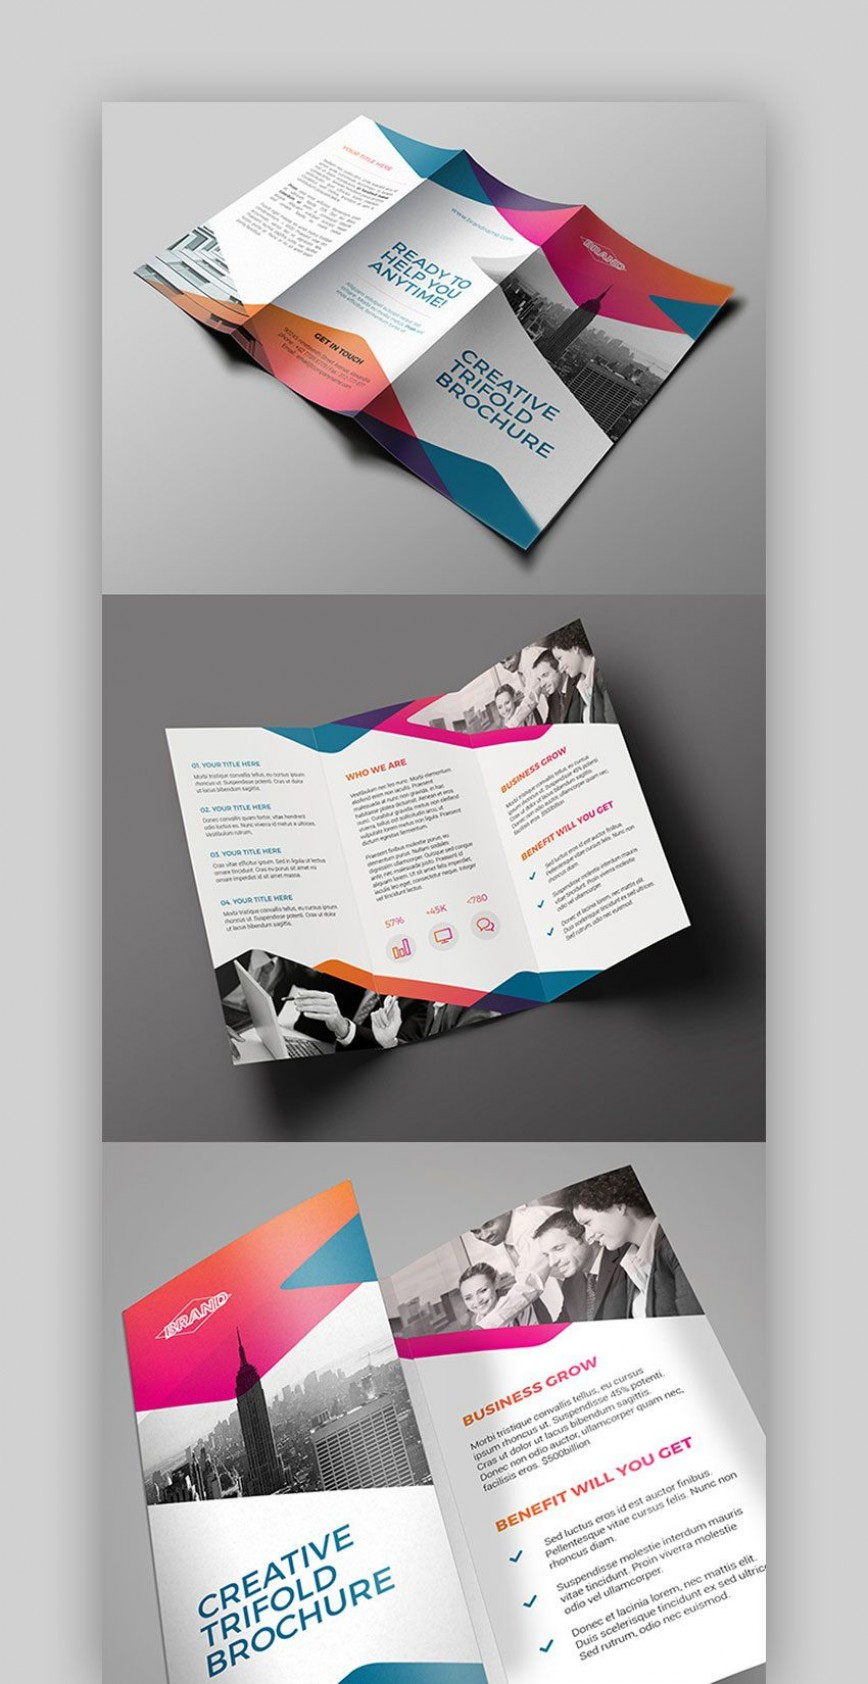 008 Amazing Indesign Trifold Brochure Template Picture  Tri Fold A4 Bi Free Download868